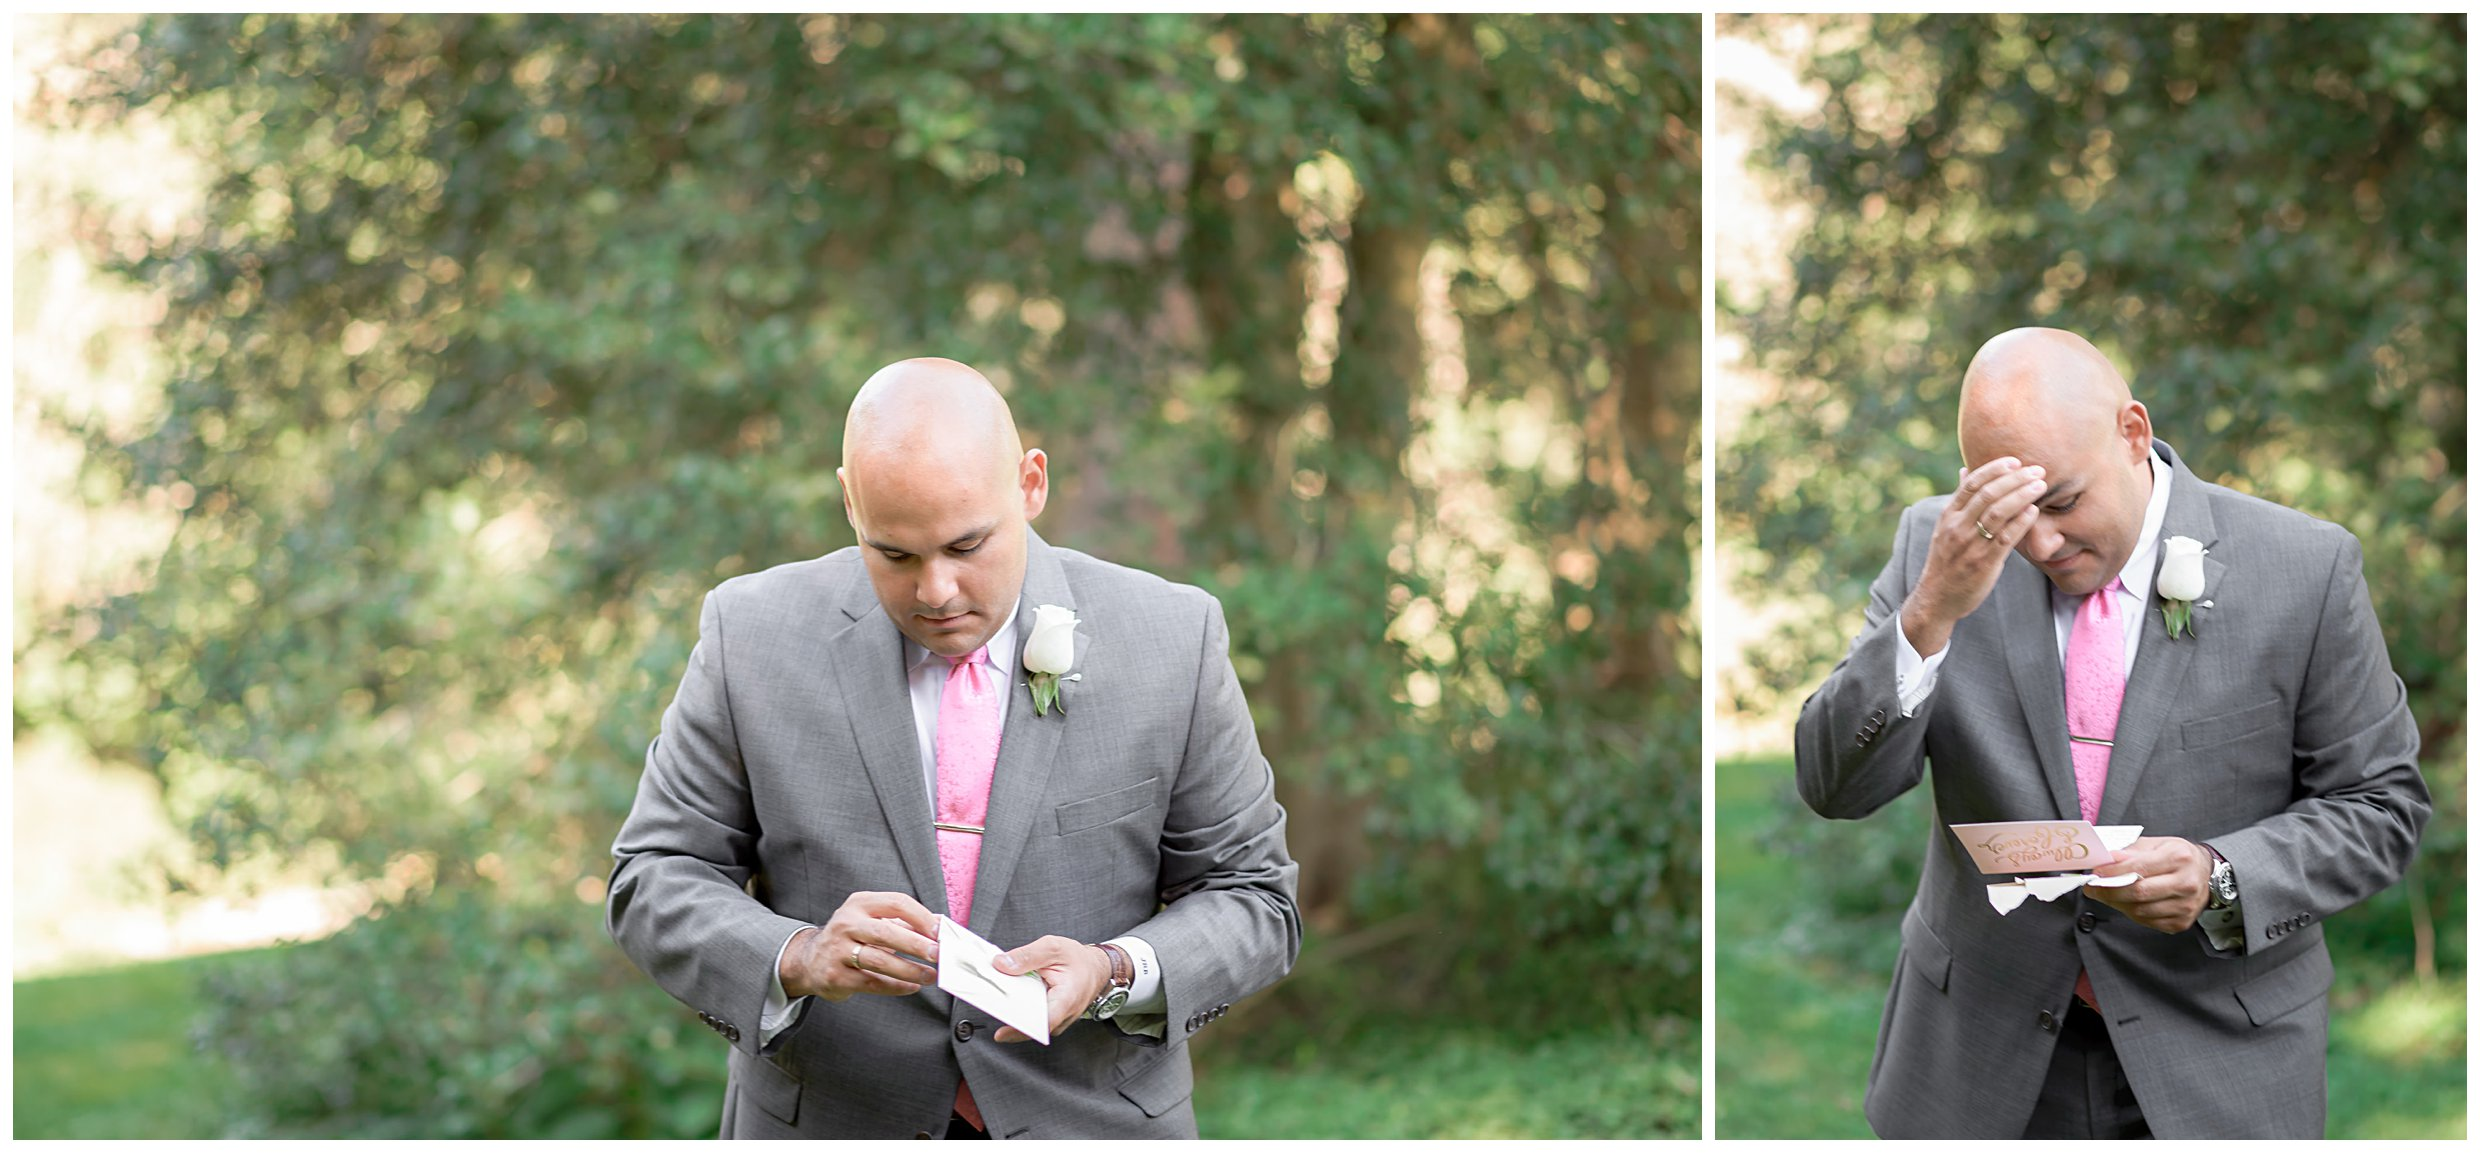 Jose-and-Jacqui-Hendry-house-arlington-virginia-wedding-photographer-charleston-south carolina-wedding-photographer-navy-blue-pink-sunset-wedding-outdoor-earthy-eco-friendly-photographer-viginia wedding--301.jpg